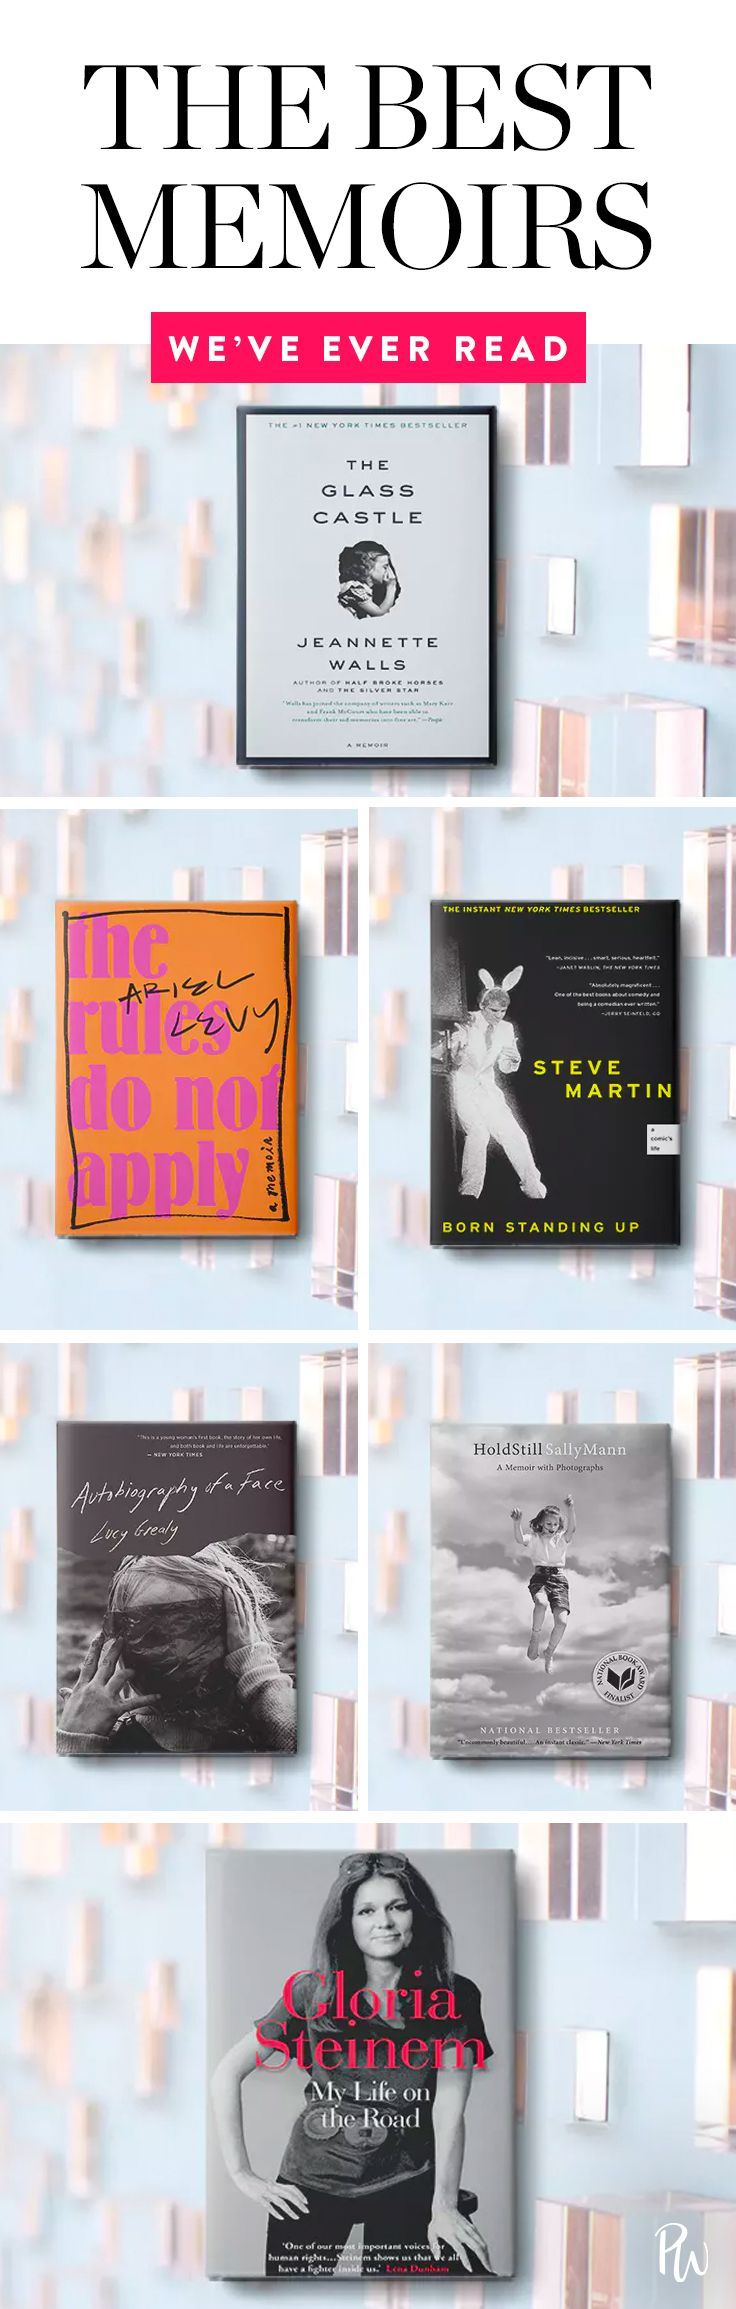 No matter your literary preferences, we're willing to bet there's at least one memoir here that will strike your fancy. Check out our all time favorite memoirs here. #memoirs #readinglist #booklist #books #newbooks